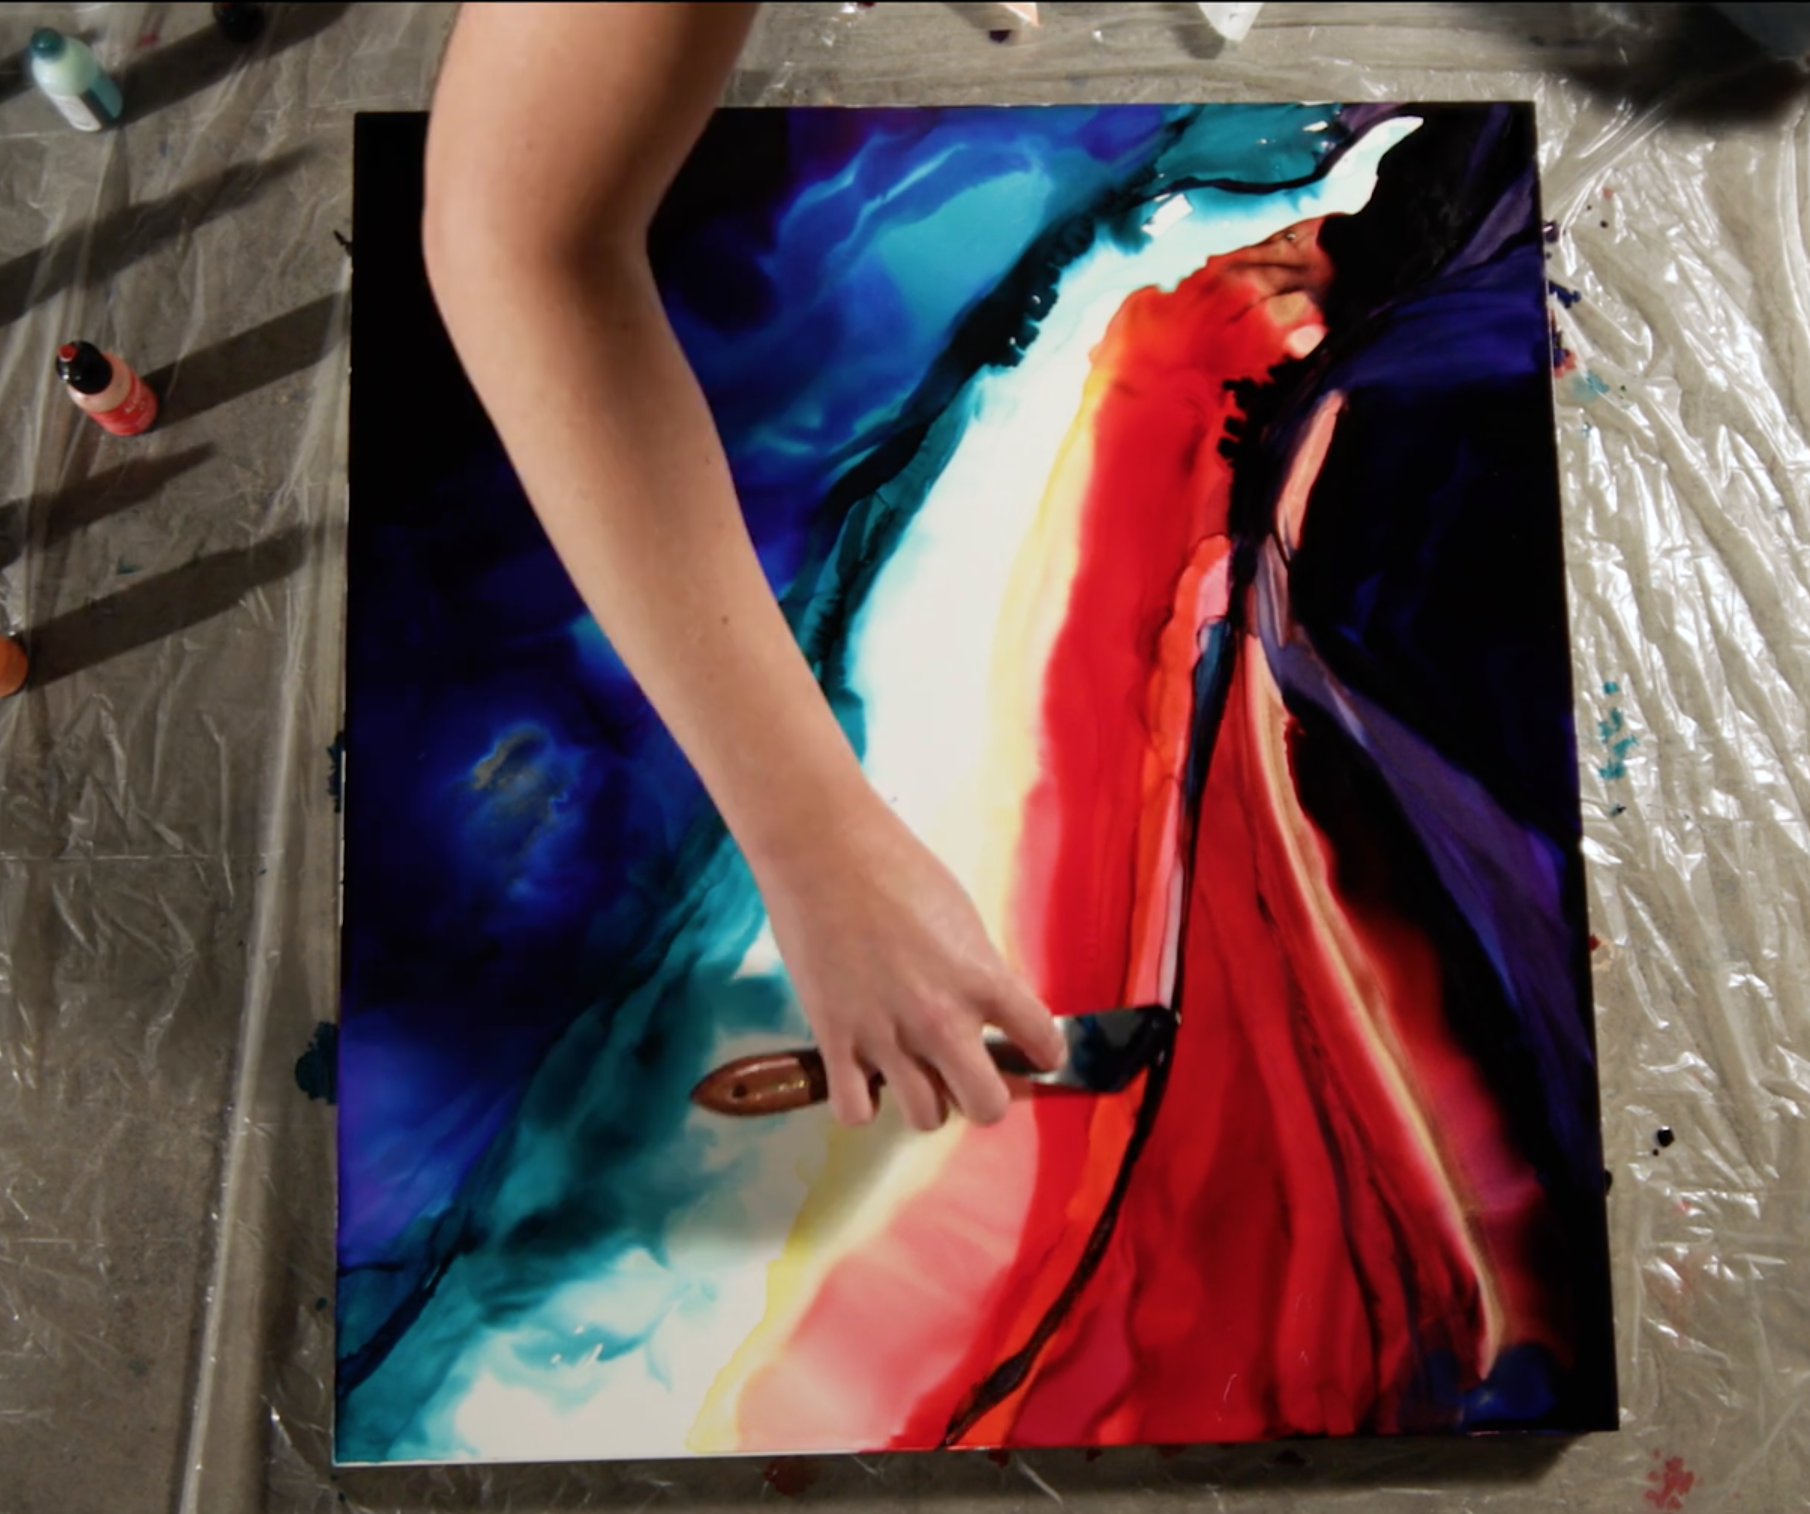 Watch as Christina Eve creates art inspired by music